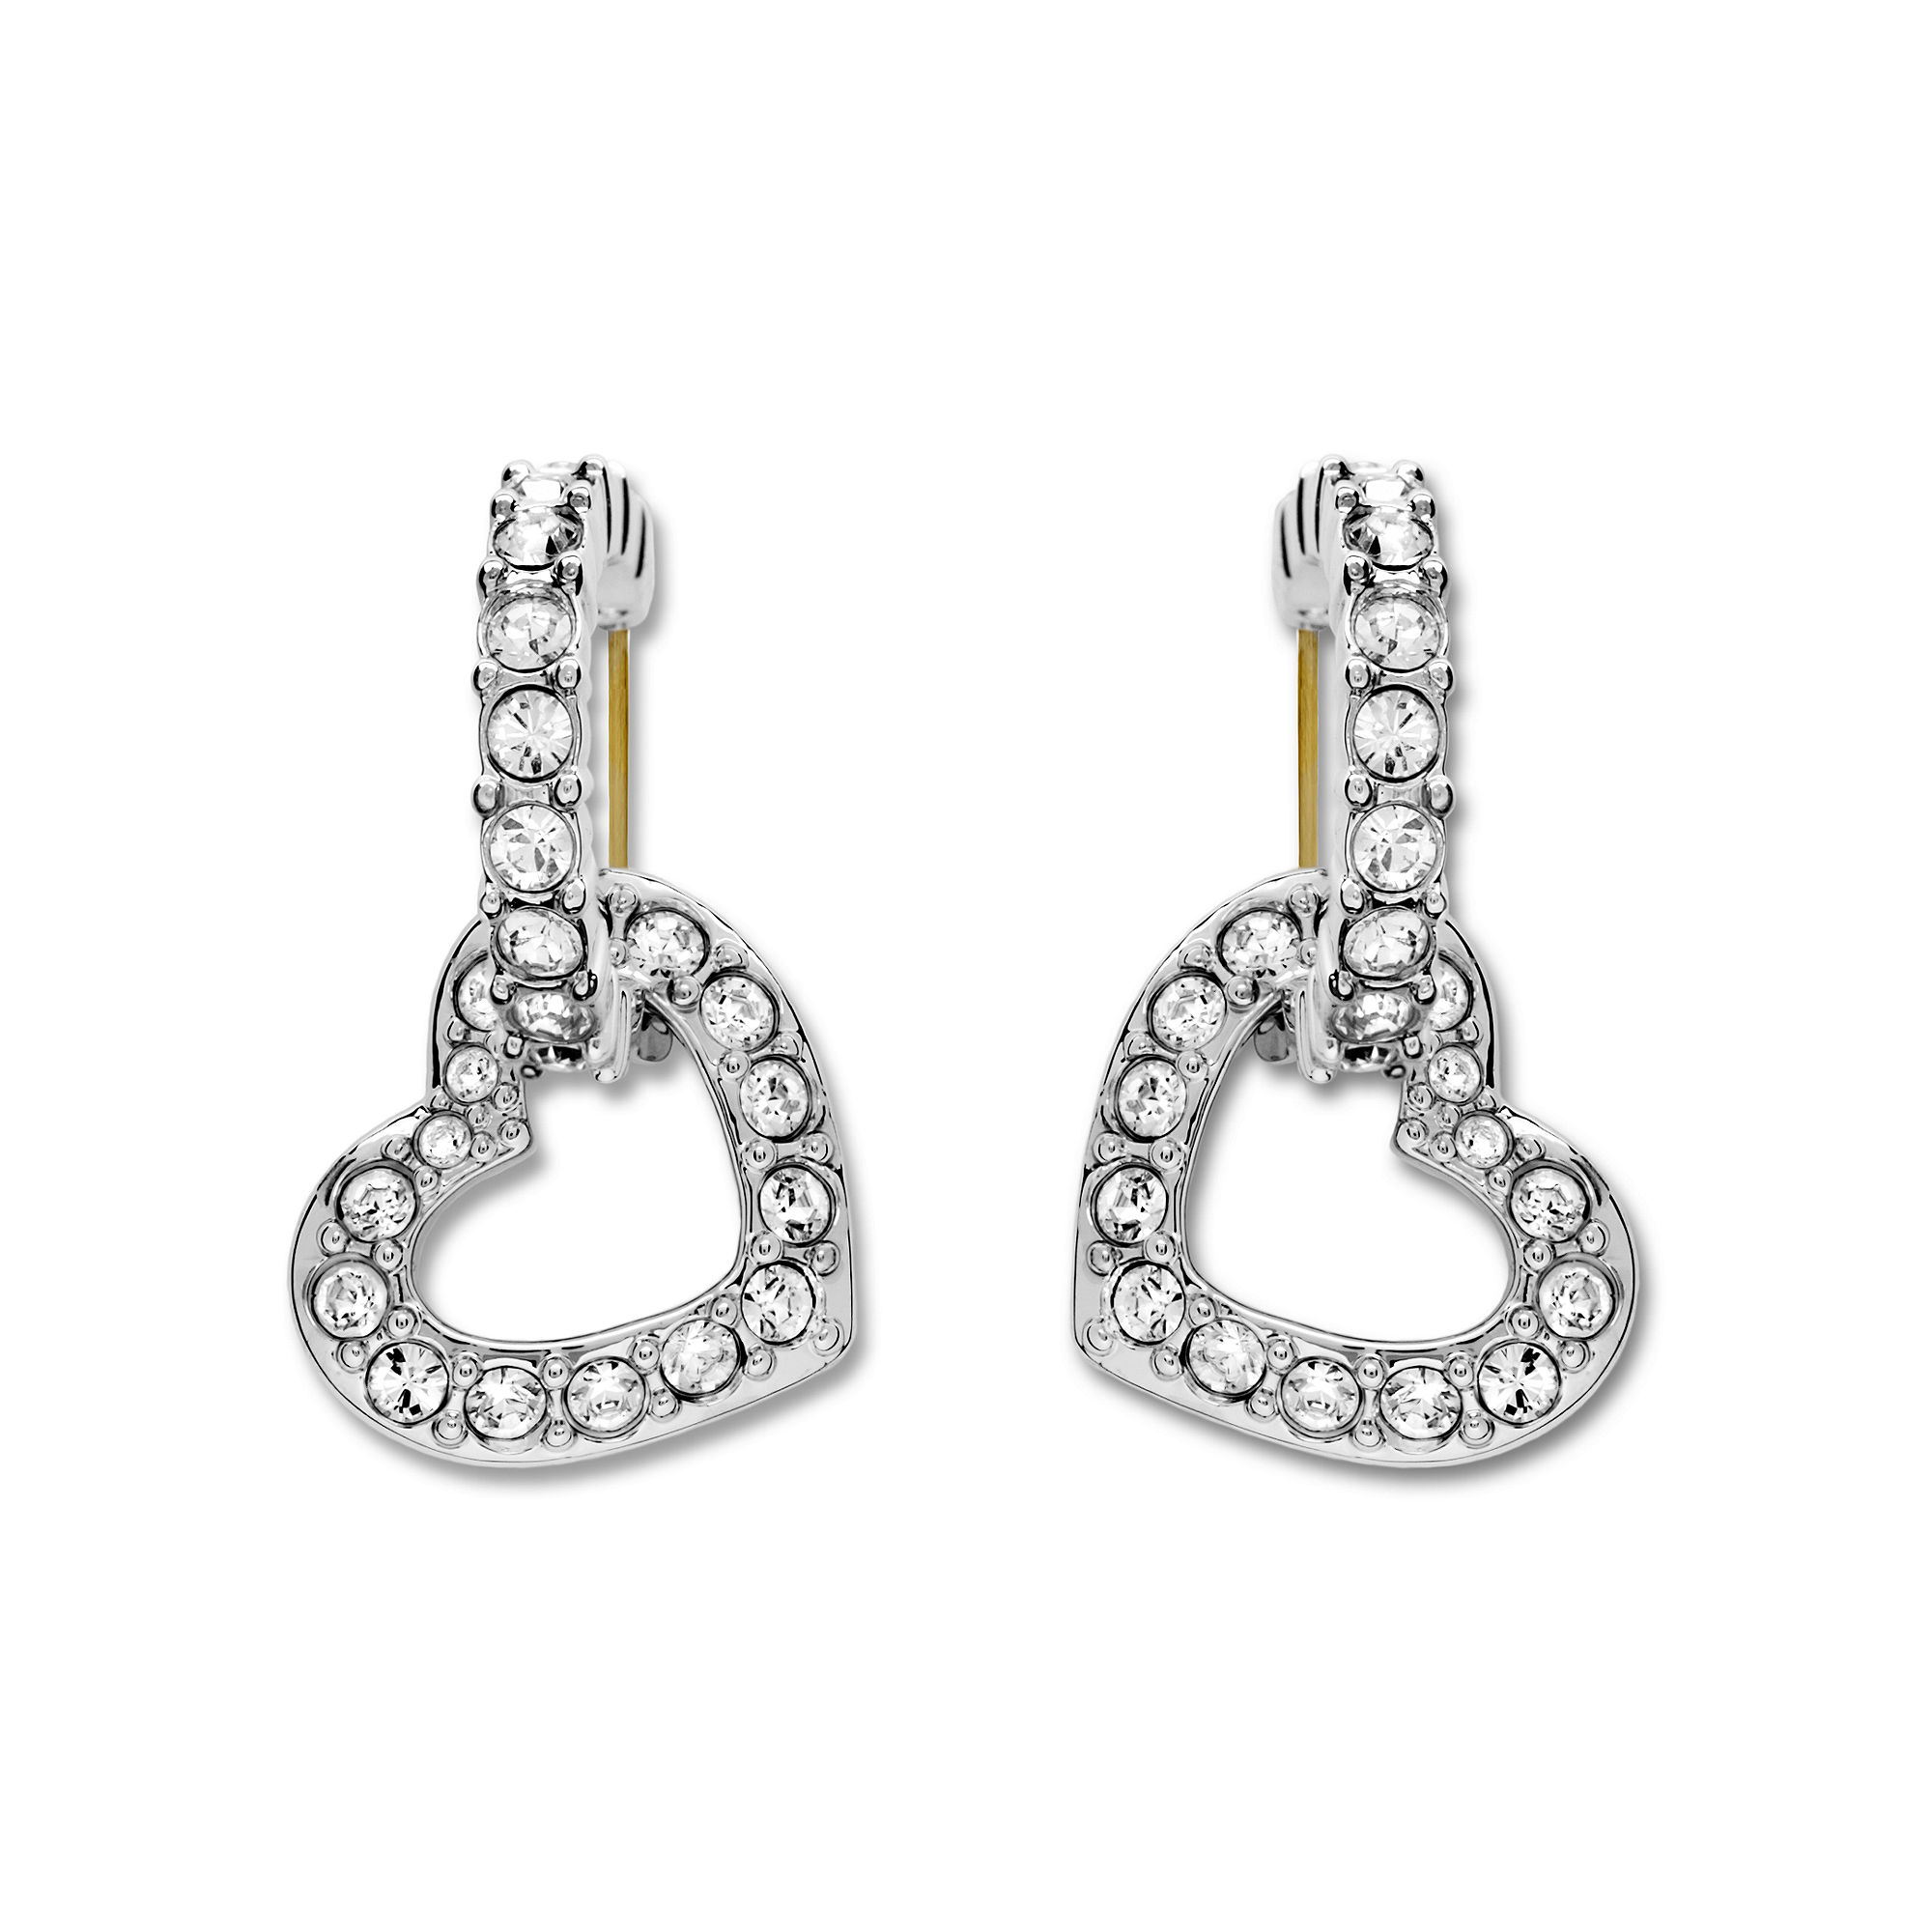 Lyst - Swarovski Pave Crystal Heart Dangle Earrings in Metallic 3dabdf0b3d